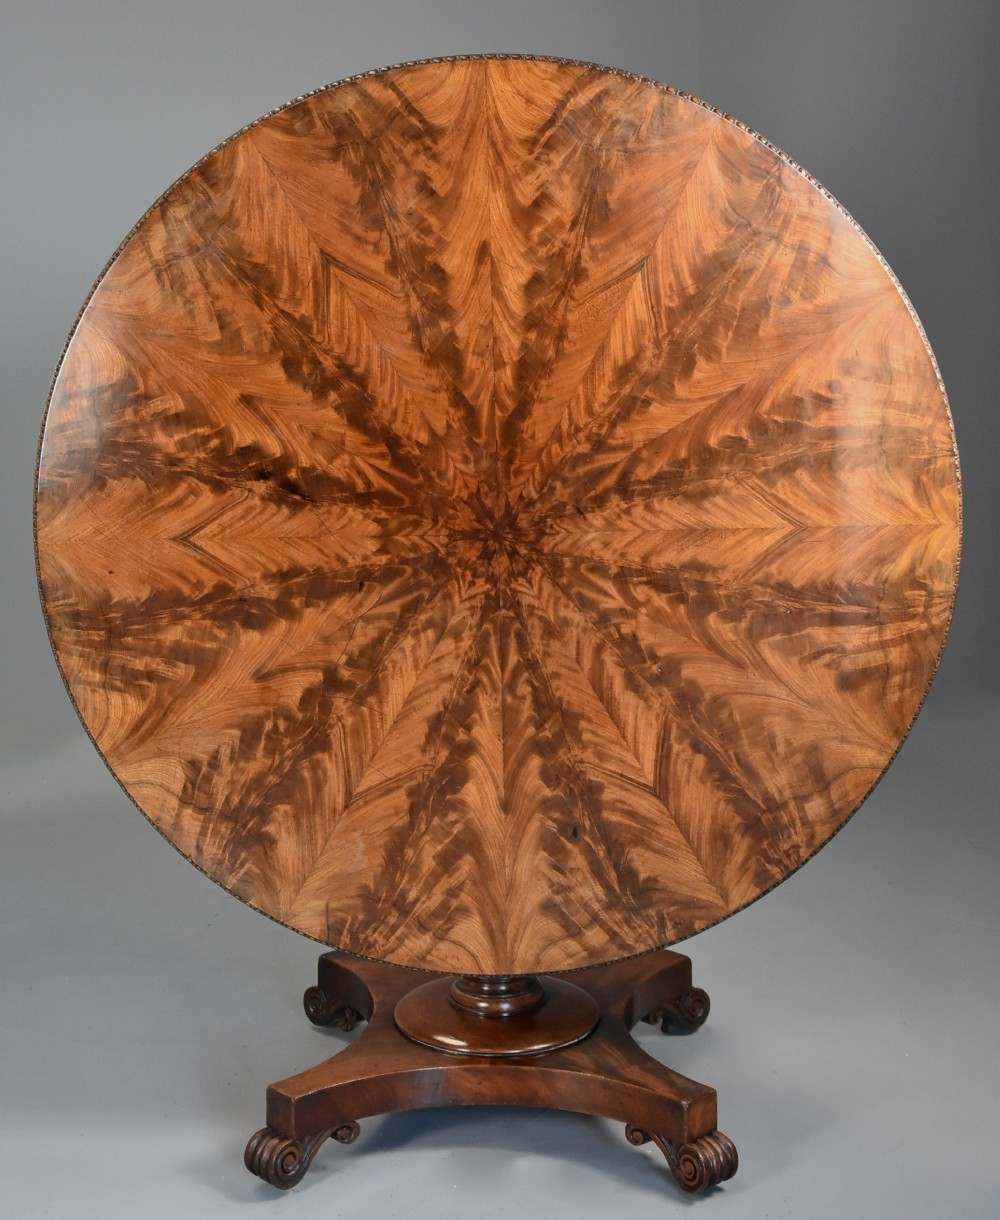 superb quality william ivth mahogany tilt top breakfast table of fine patina